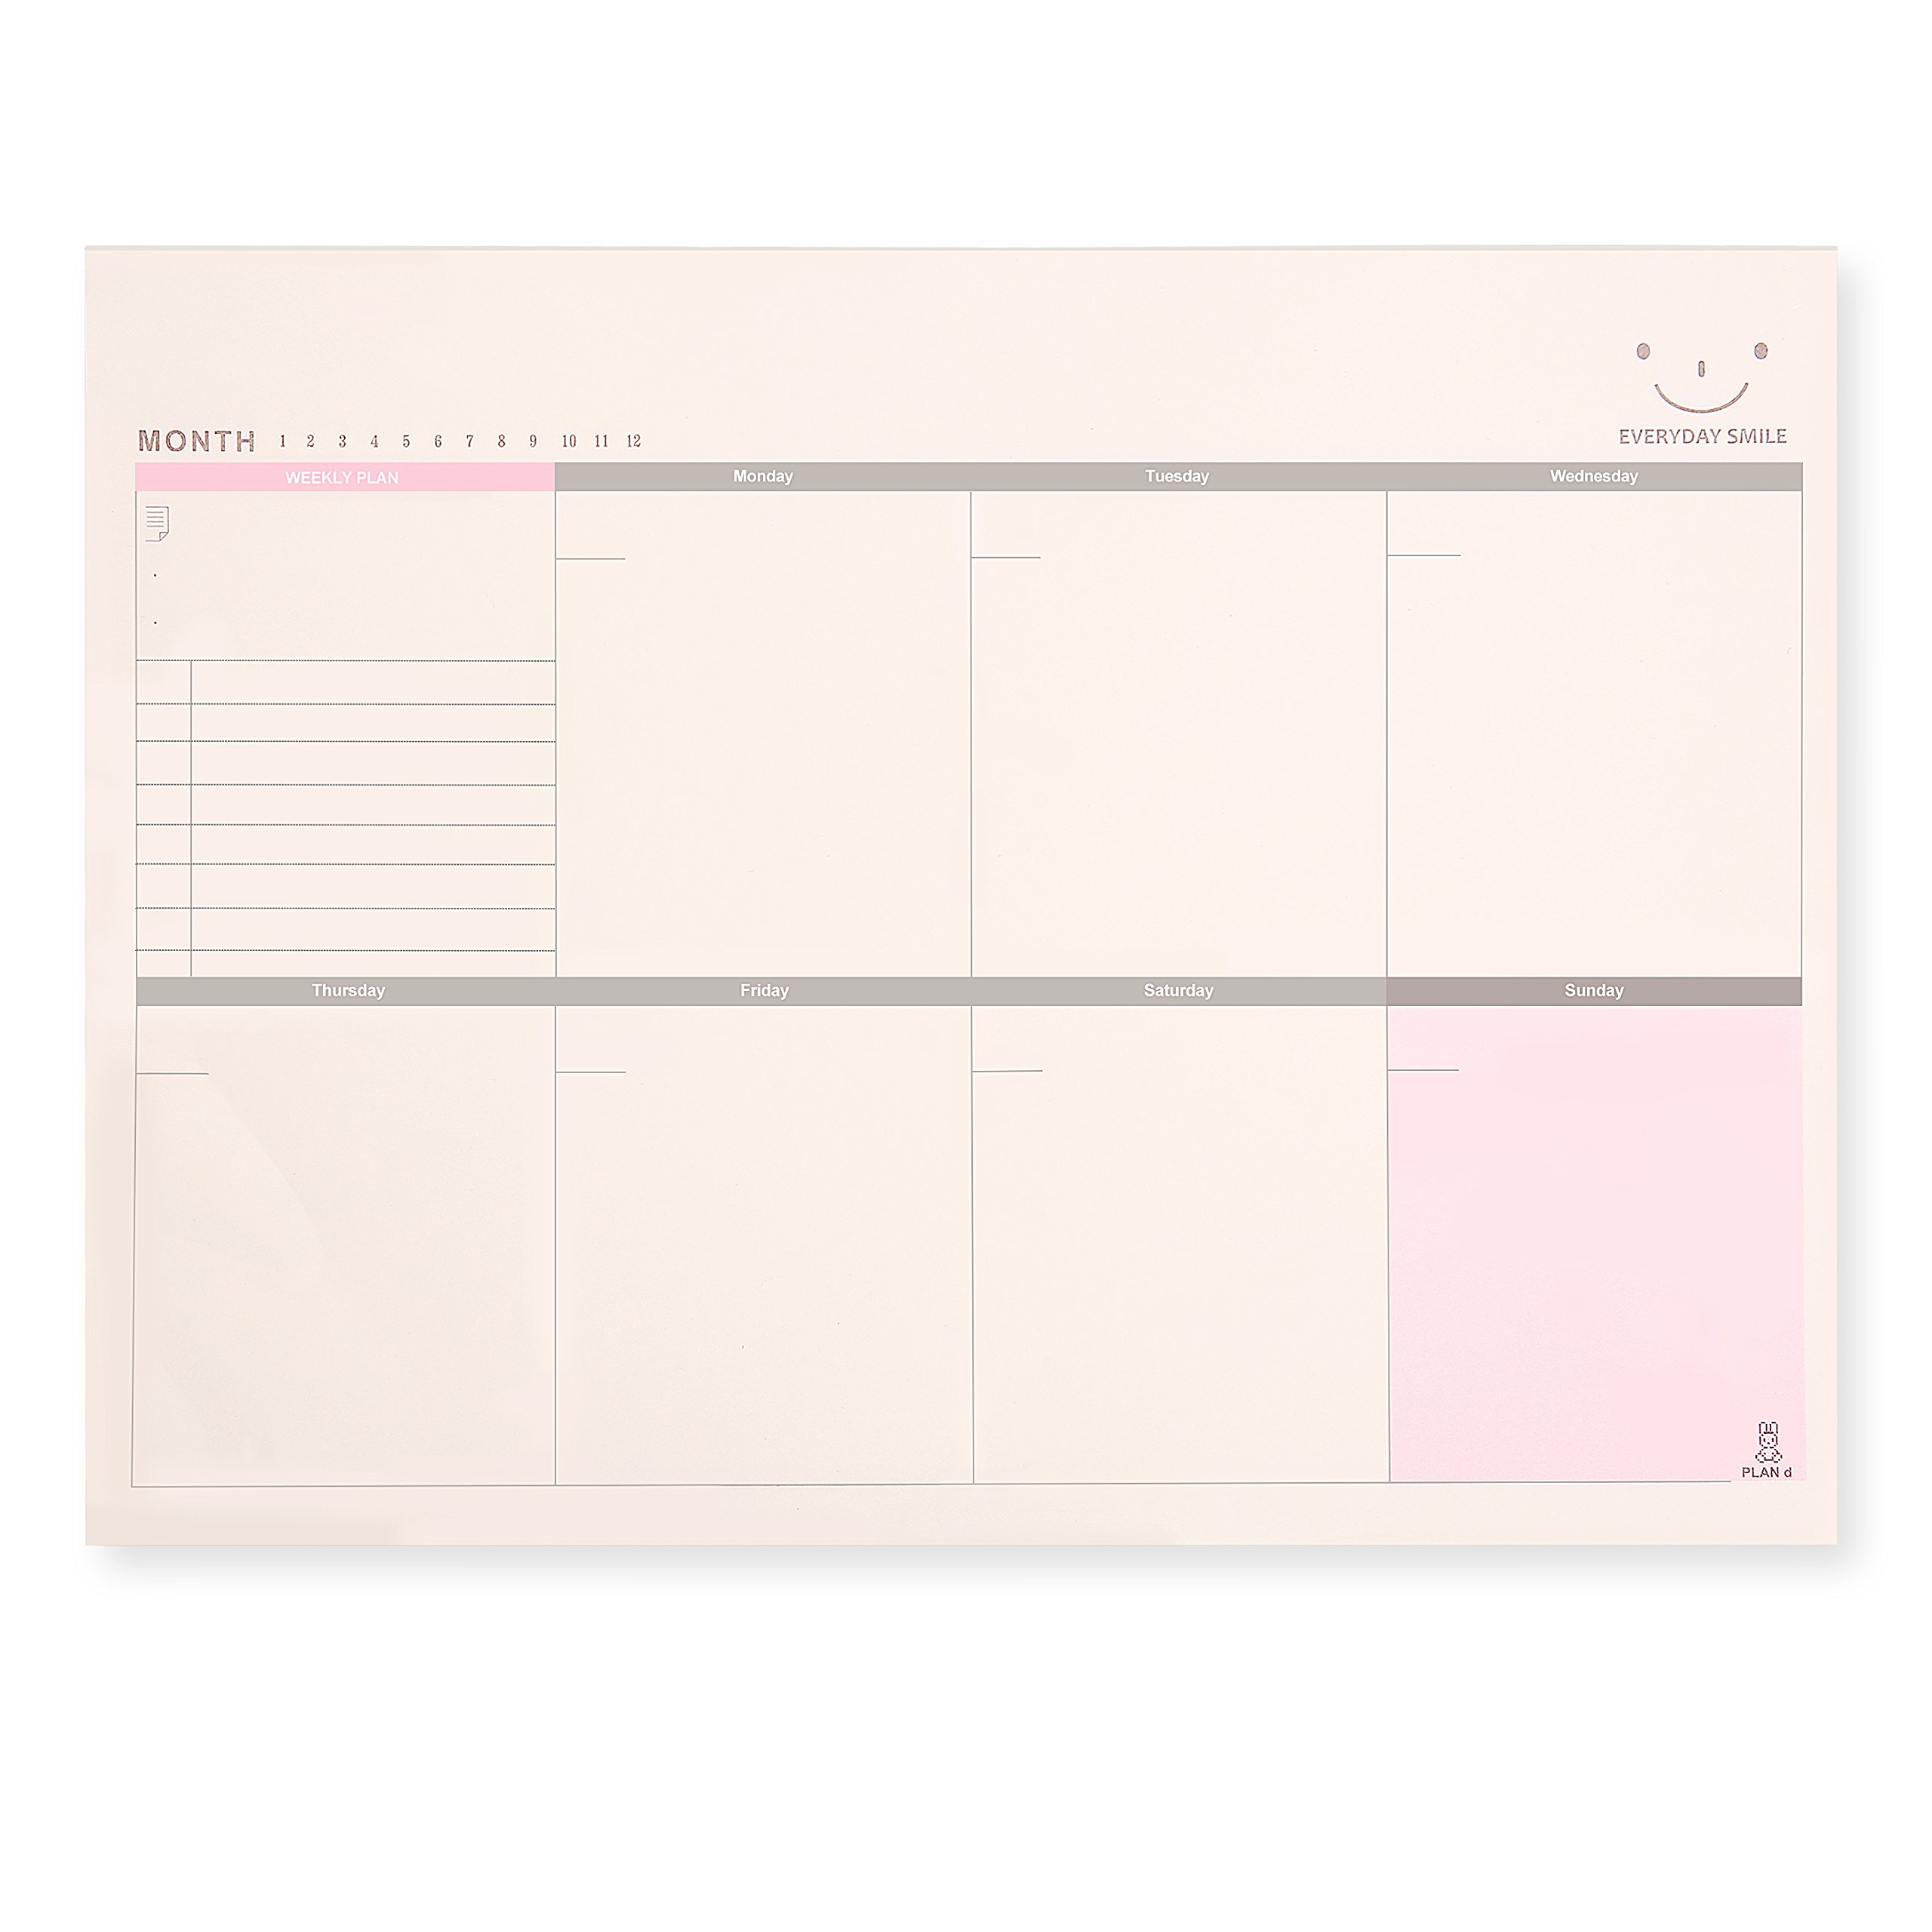 Skydue Weekly Planner Pad, A4 Large Tear-off Sheets Planning Organizer Notes Pads, January to December 2018, 11.4'' x 8.3'' 60 Pages